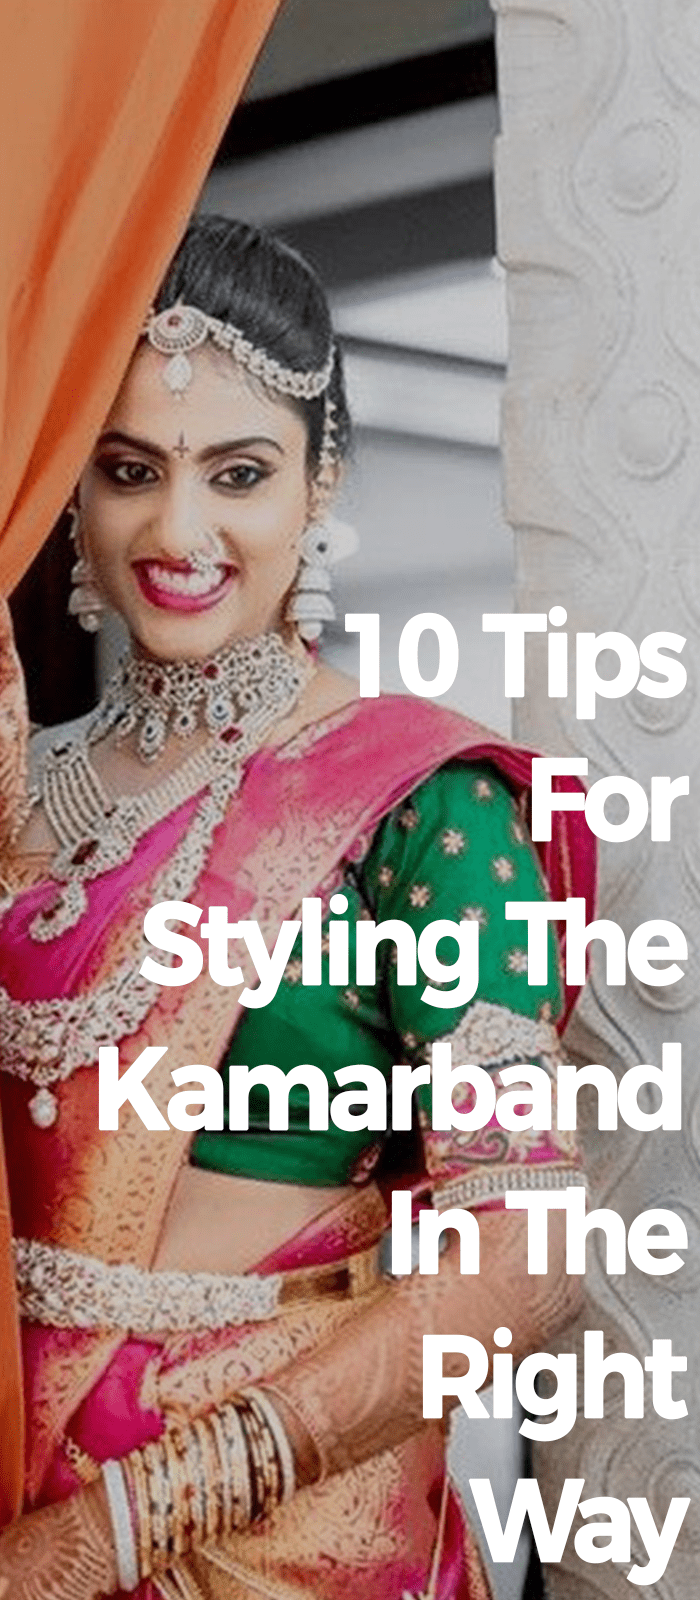 10 Tips For Styling The Kamarband In The Right Way.